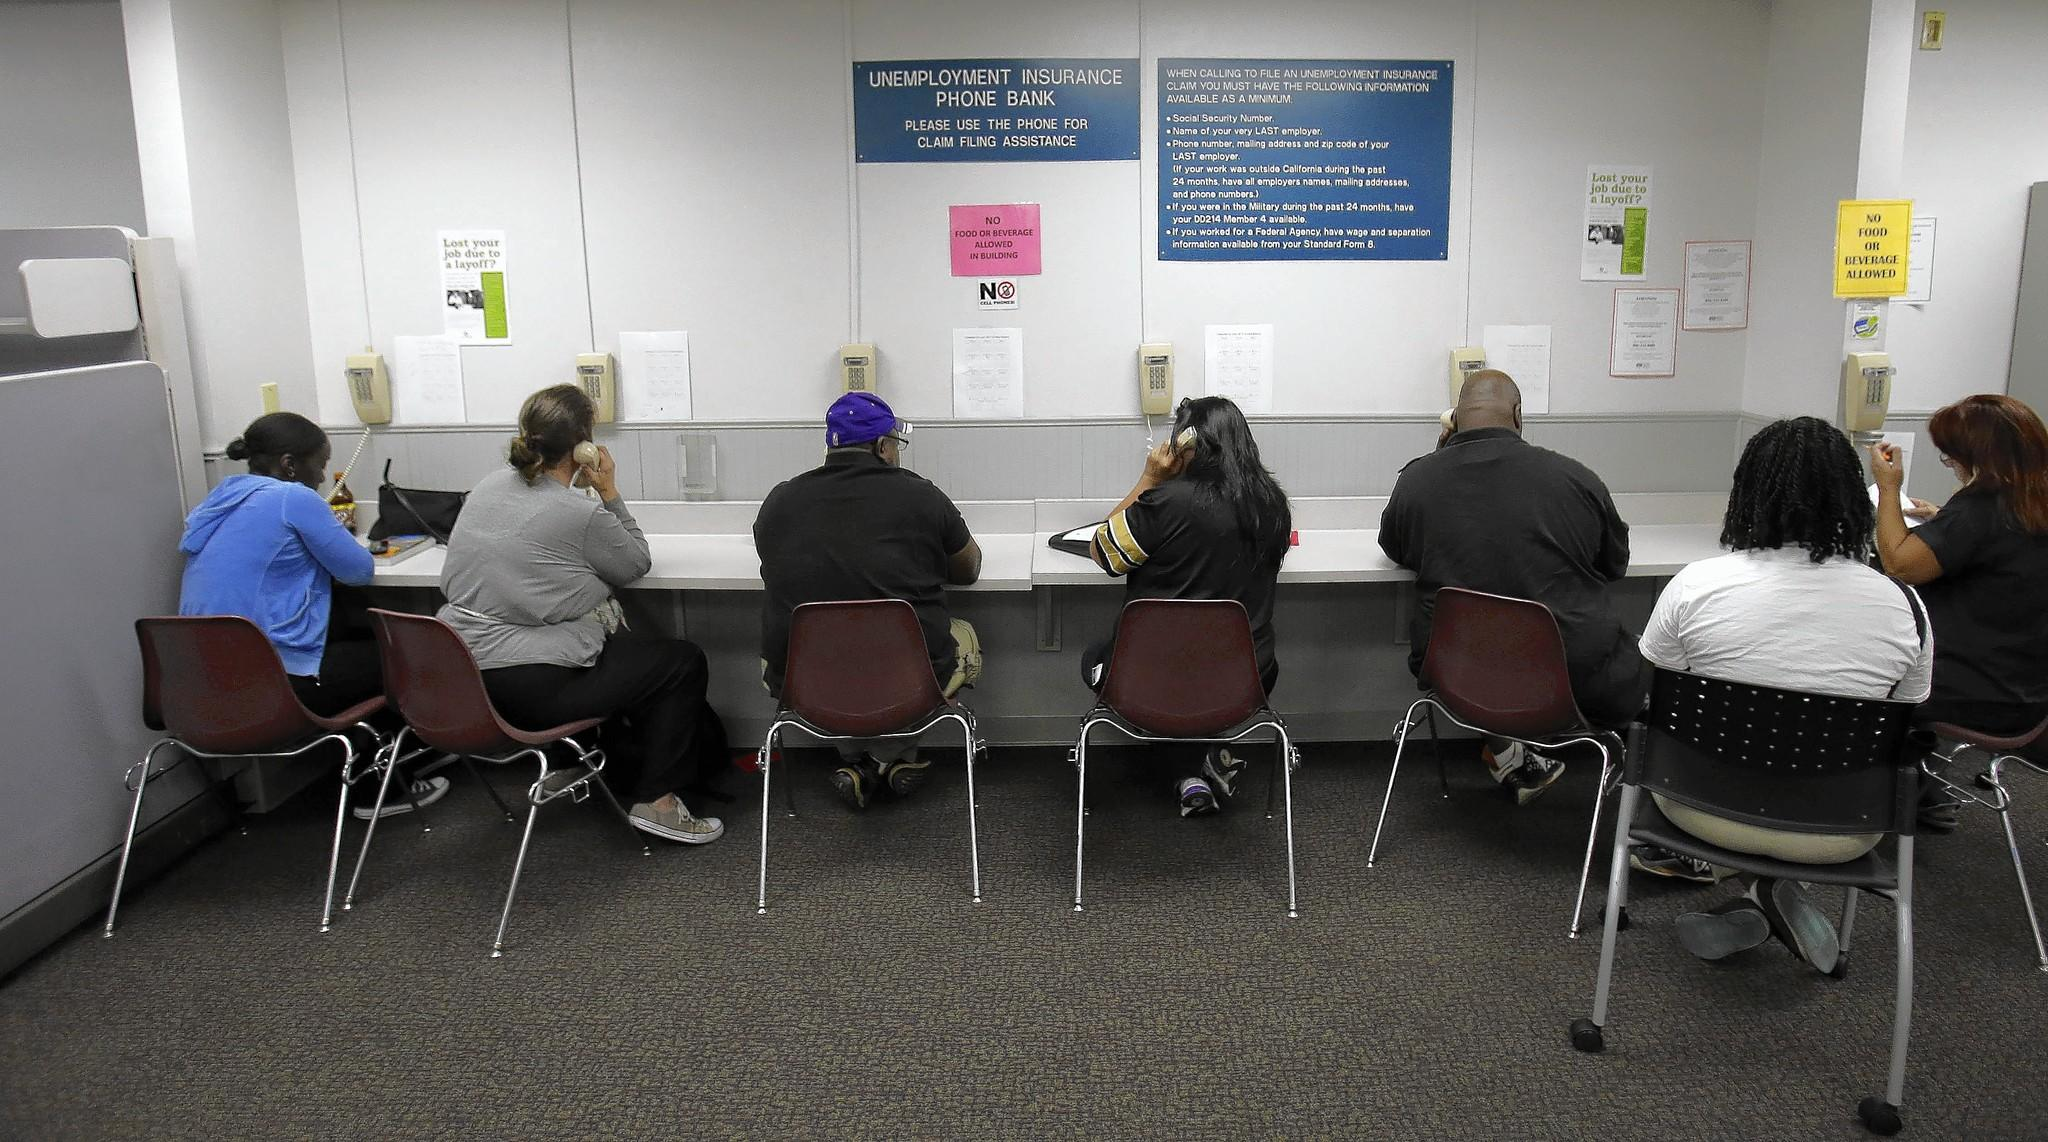 Visitors use the unemployment insurance phone bank in the California Employment Development Department office in Sacramento.